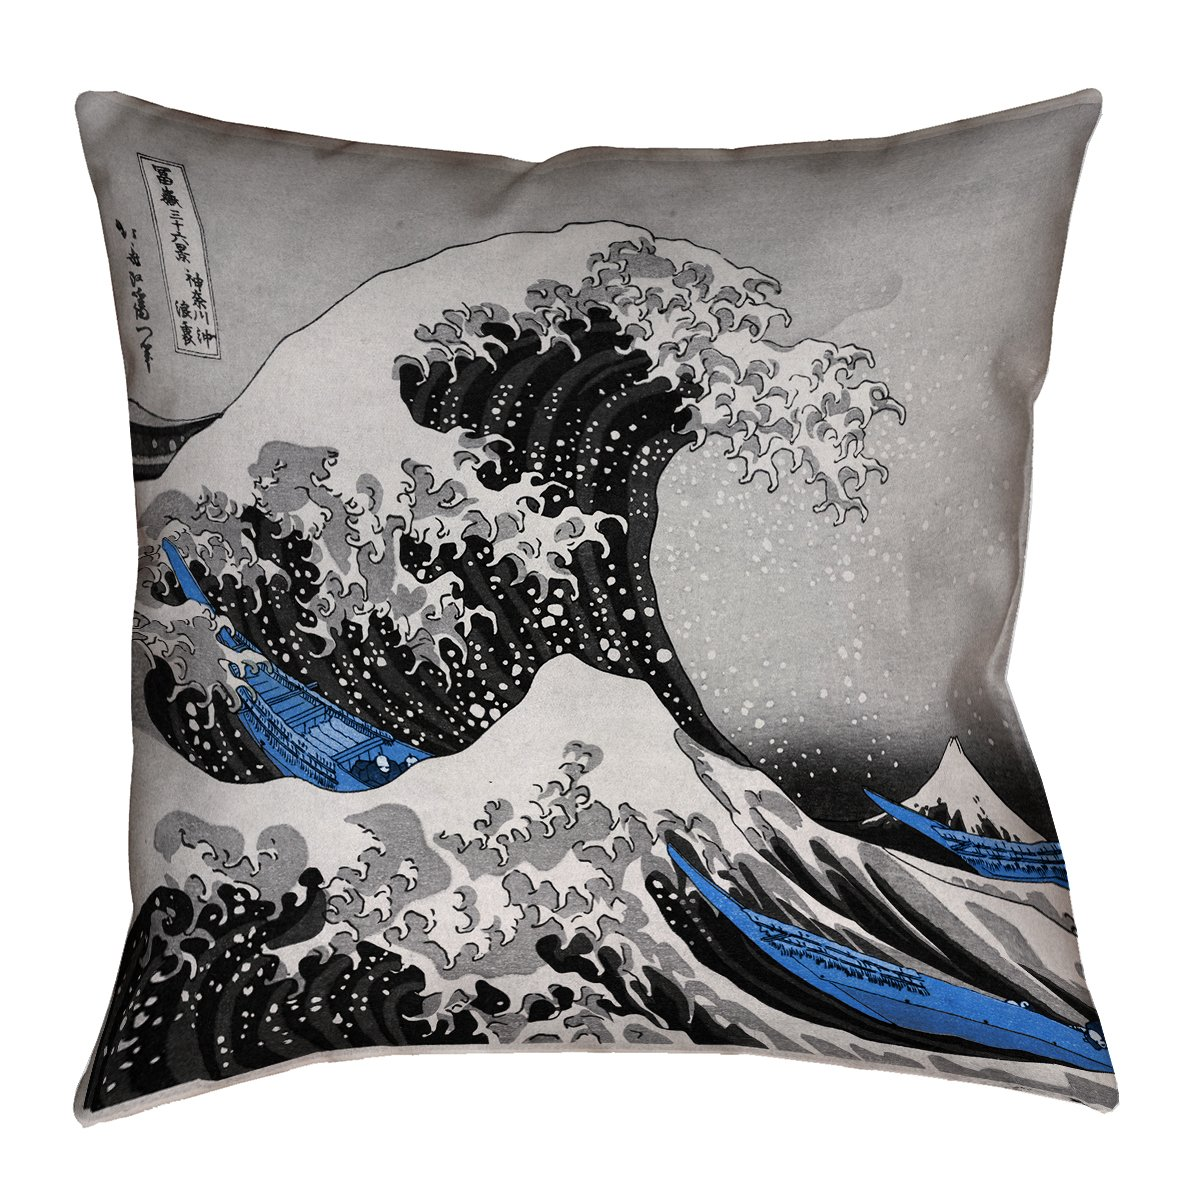 ArtVerse Katsushika Hokusai 18\' x 18\' Cotton Twill Double Sided Print with Concealed Zipper & Insert The The Wave with Blue Accents Pillow